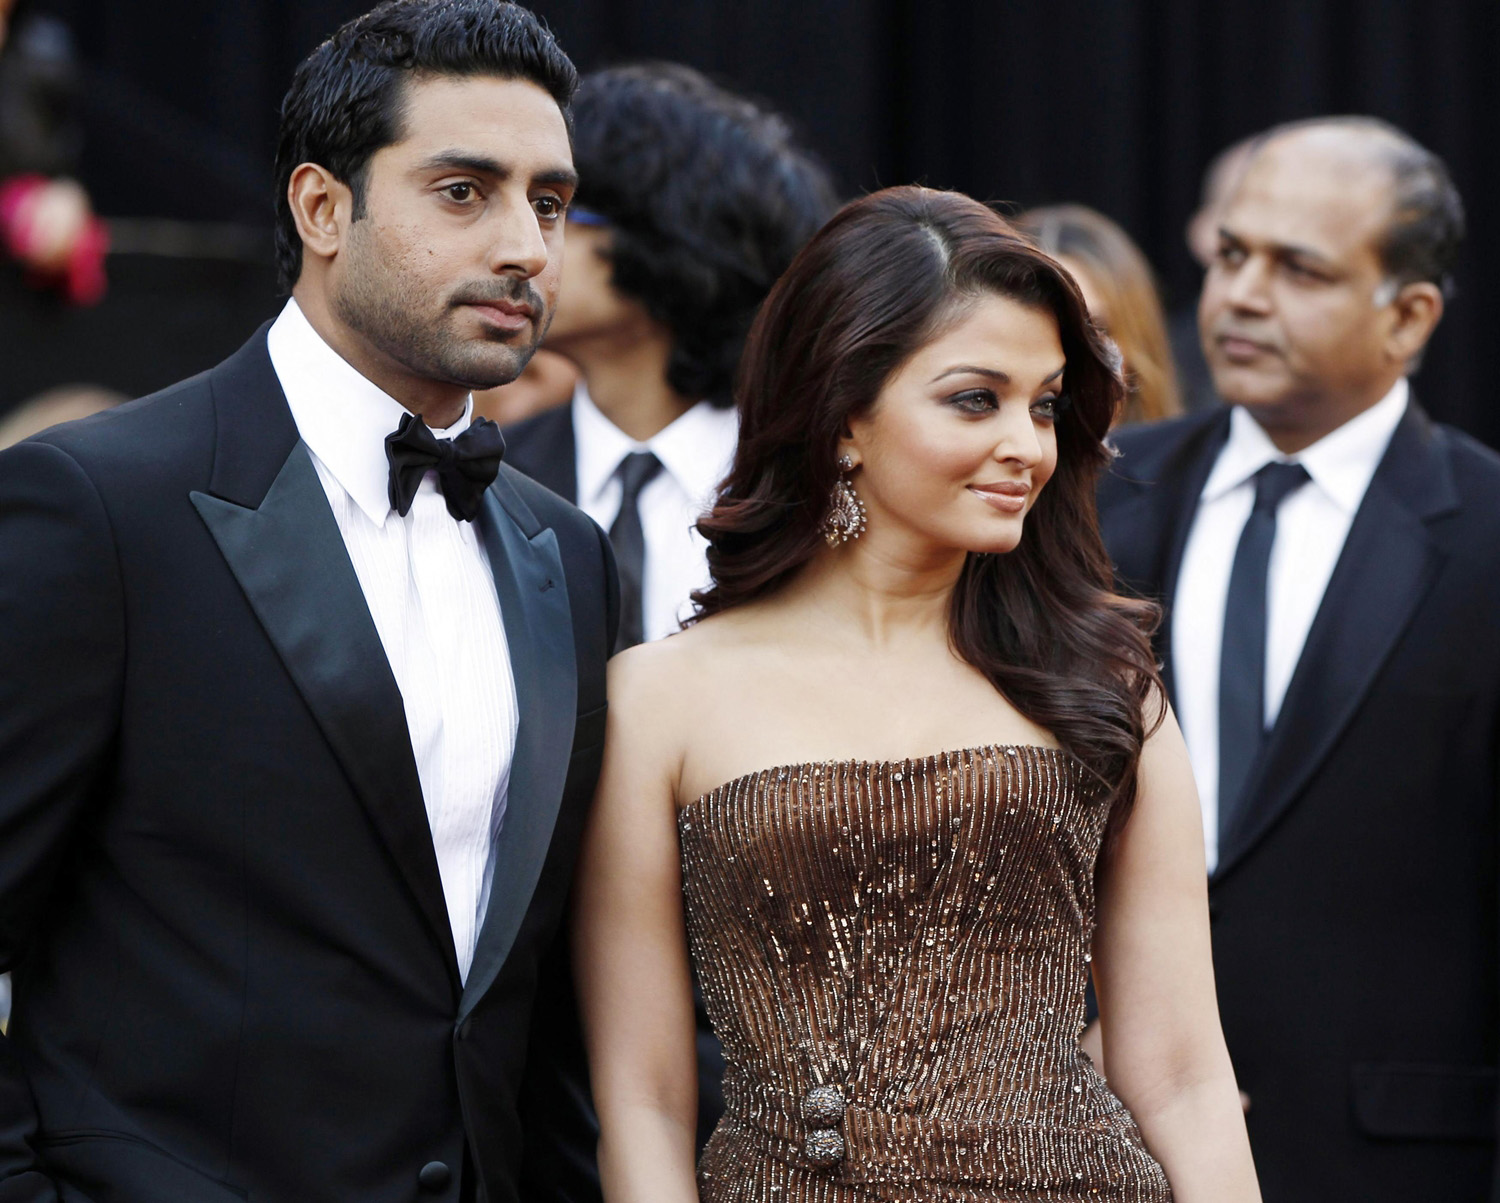 http://1.bp.blogspot.com/-DW8h9W5Xats/TbEOavU_u9I/AAAAAAAADTQ/kA6p4lGcRj0/s1600/Aishwarya-Rai-Abhishek-Bachchan-Together-Famous-Hot-Bollywood-Couple-Wallpapers-Pics-Photos-Scenes-Images-2011.jpg